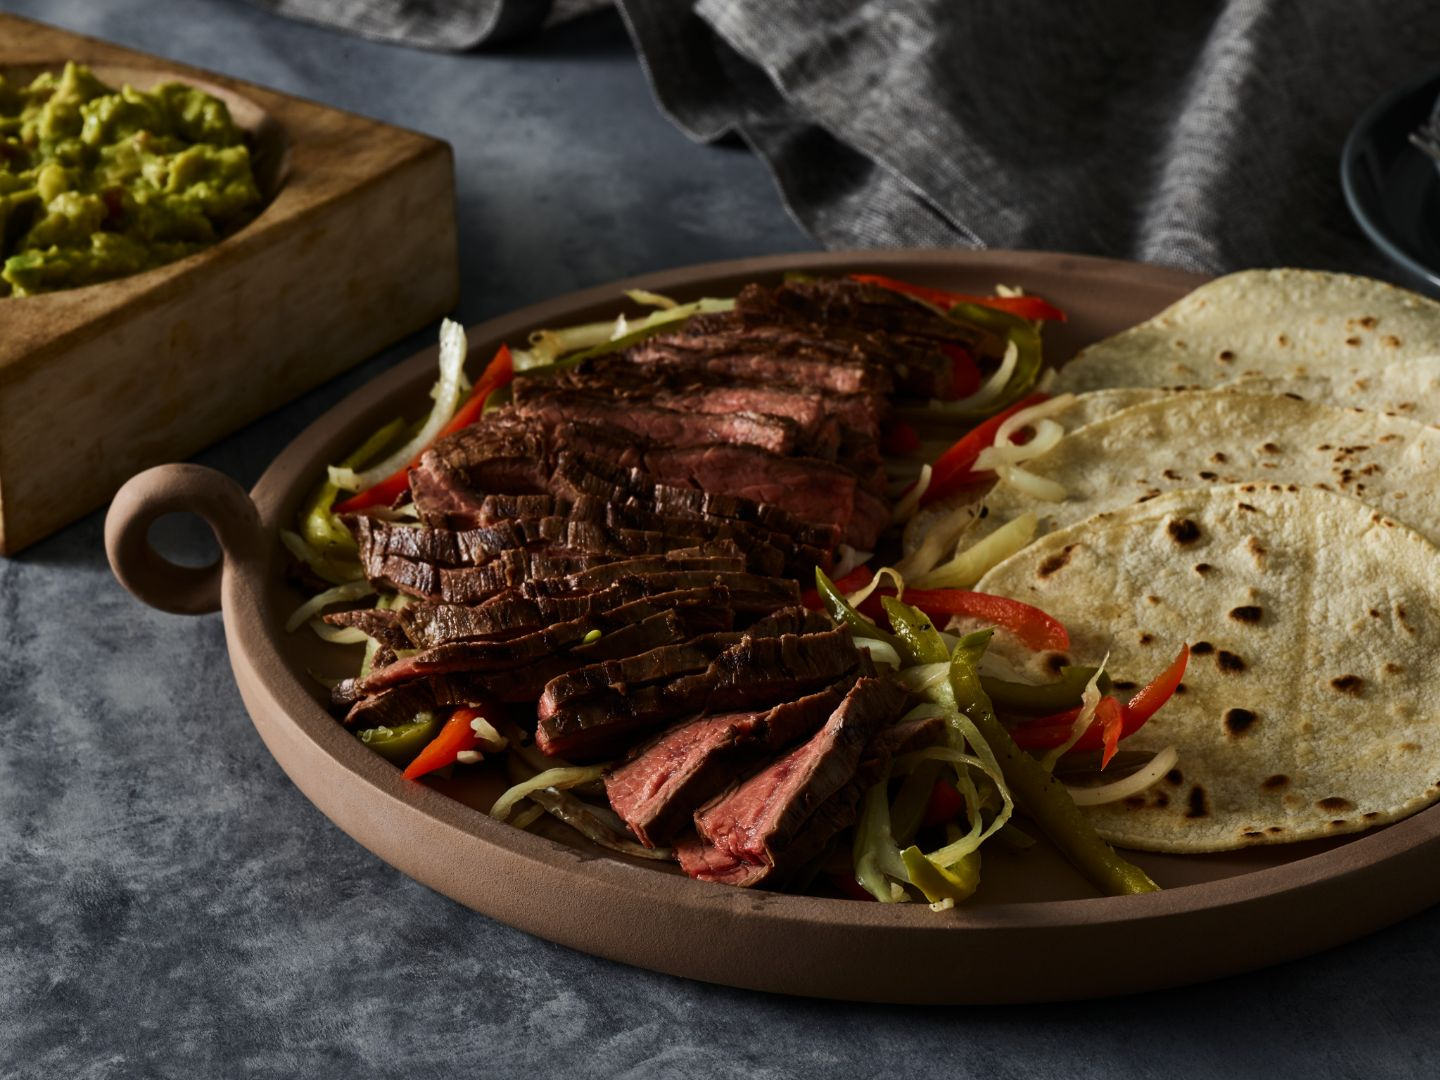 steak-fajitas horizontal.tif